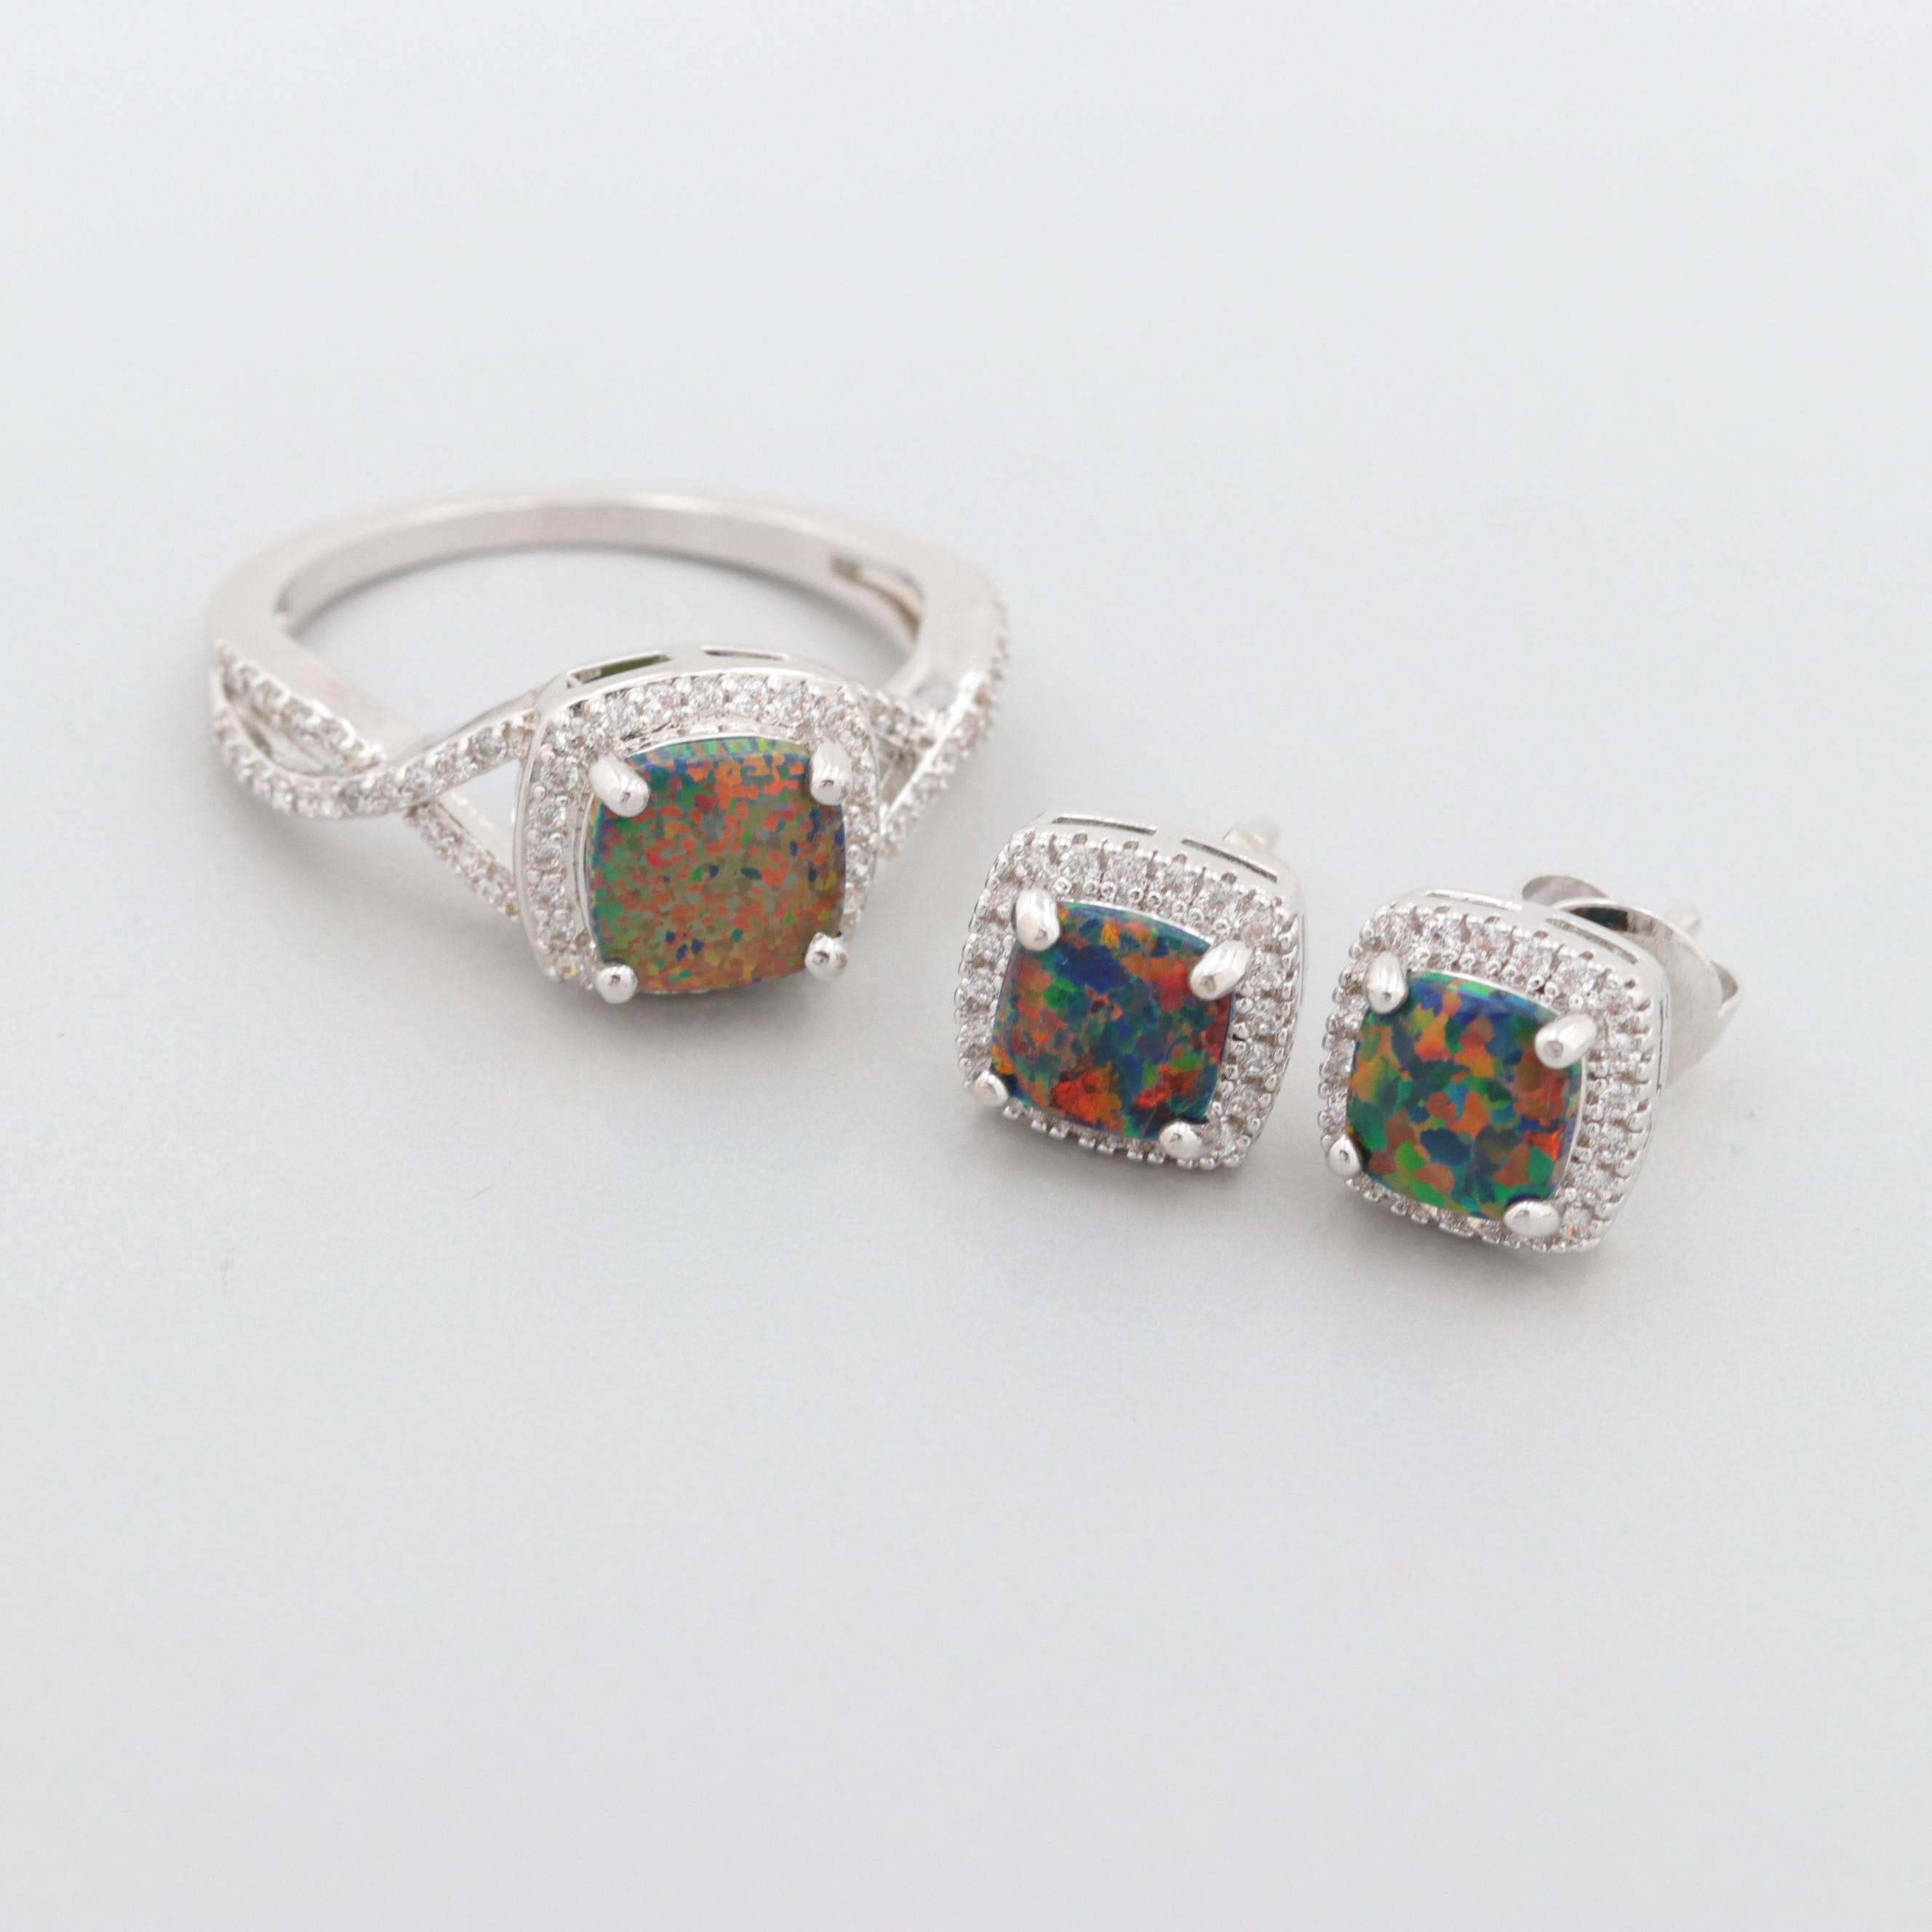 Silver Tone Synthetic Opal and Cubic Zirconia Ring and Stud Earrings